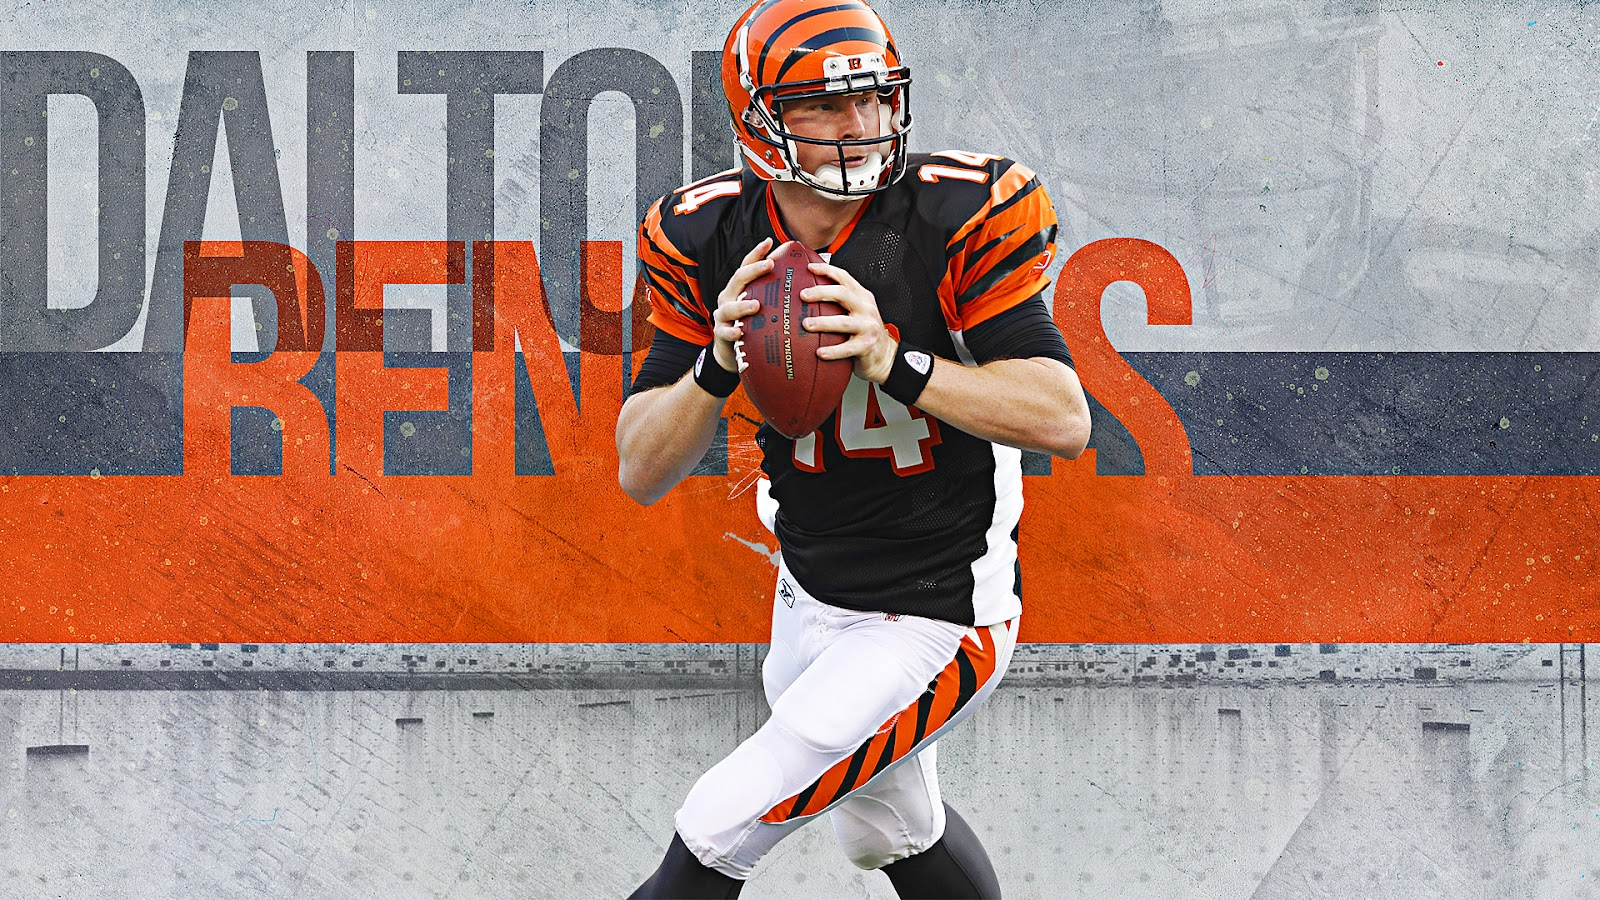 The Bengals are 3-0, but how much longer can they hold onto it?